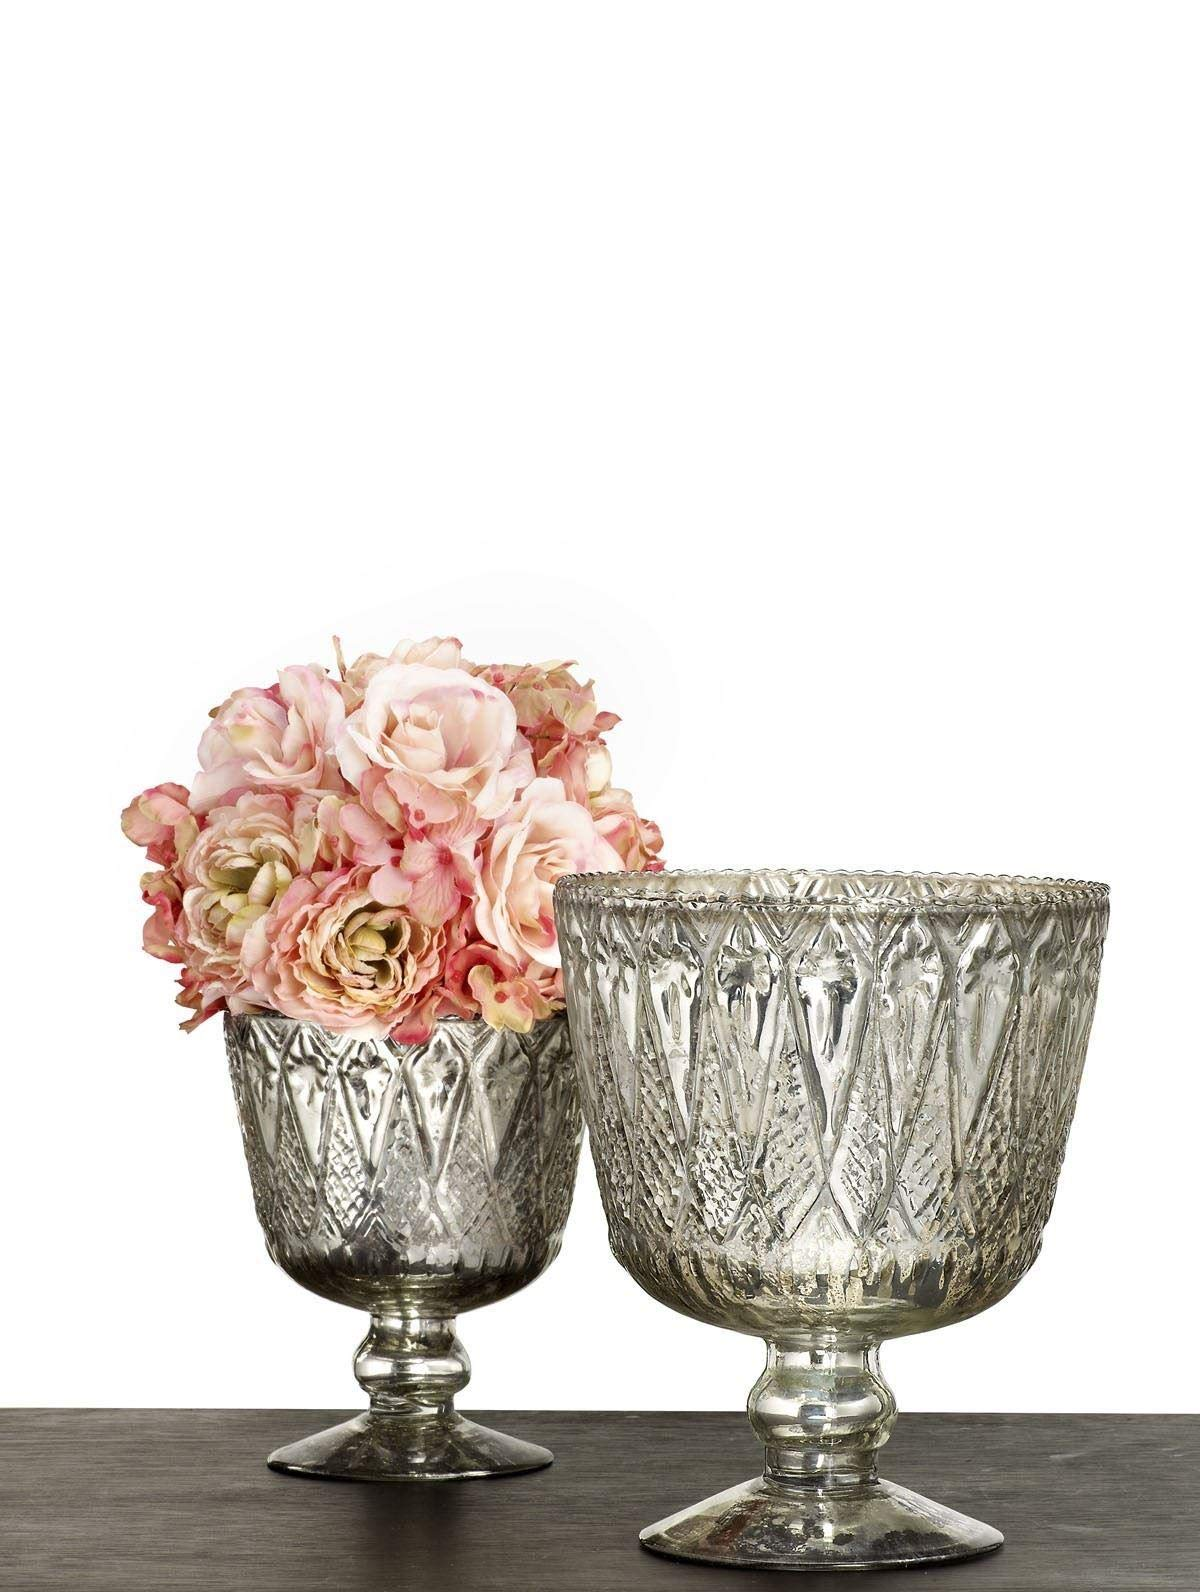 Serene Spaces Living Patterned Silver Glass Coupes, Set of 2 Elegant Vase and Container Measures 5.5'' Diameter X 7'' Tall & 7'' Diameter X 9'' Tall